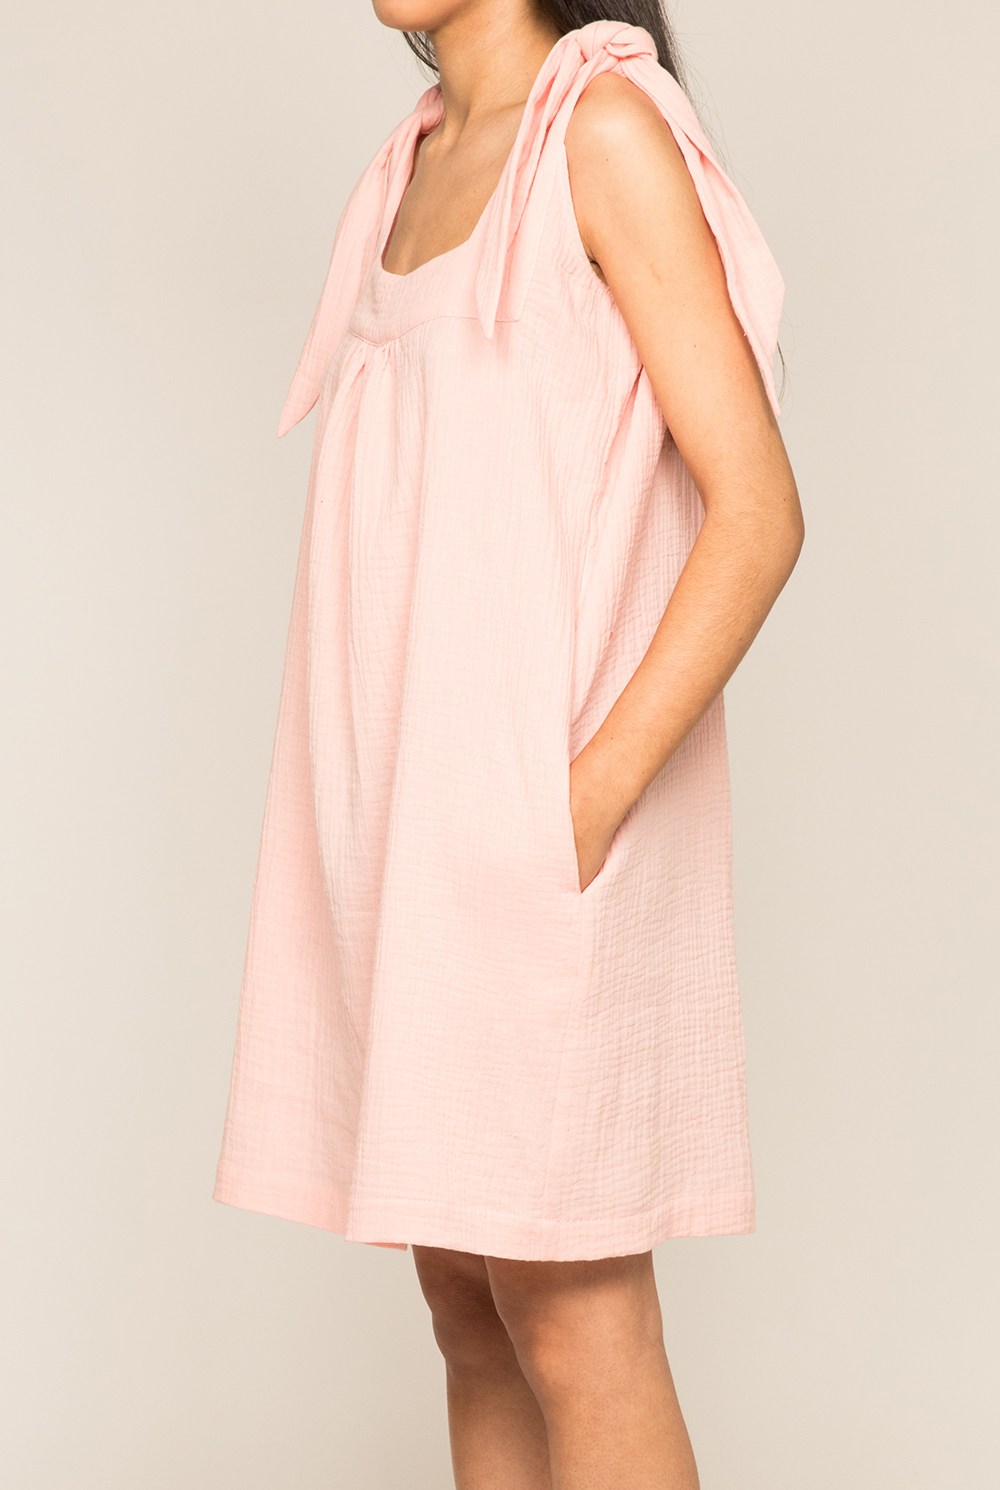 Robe Naples rose